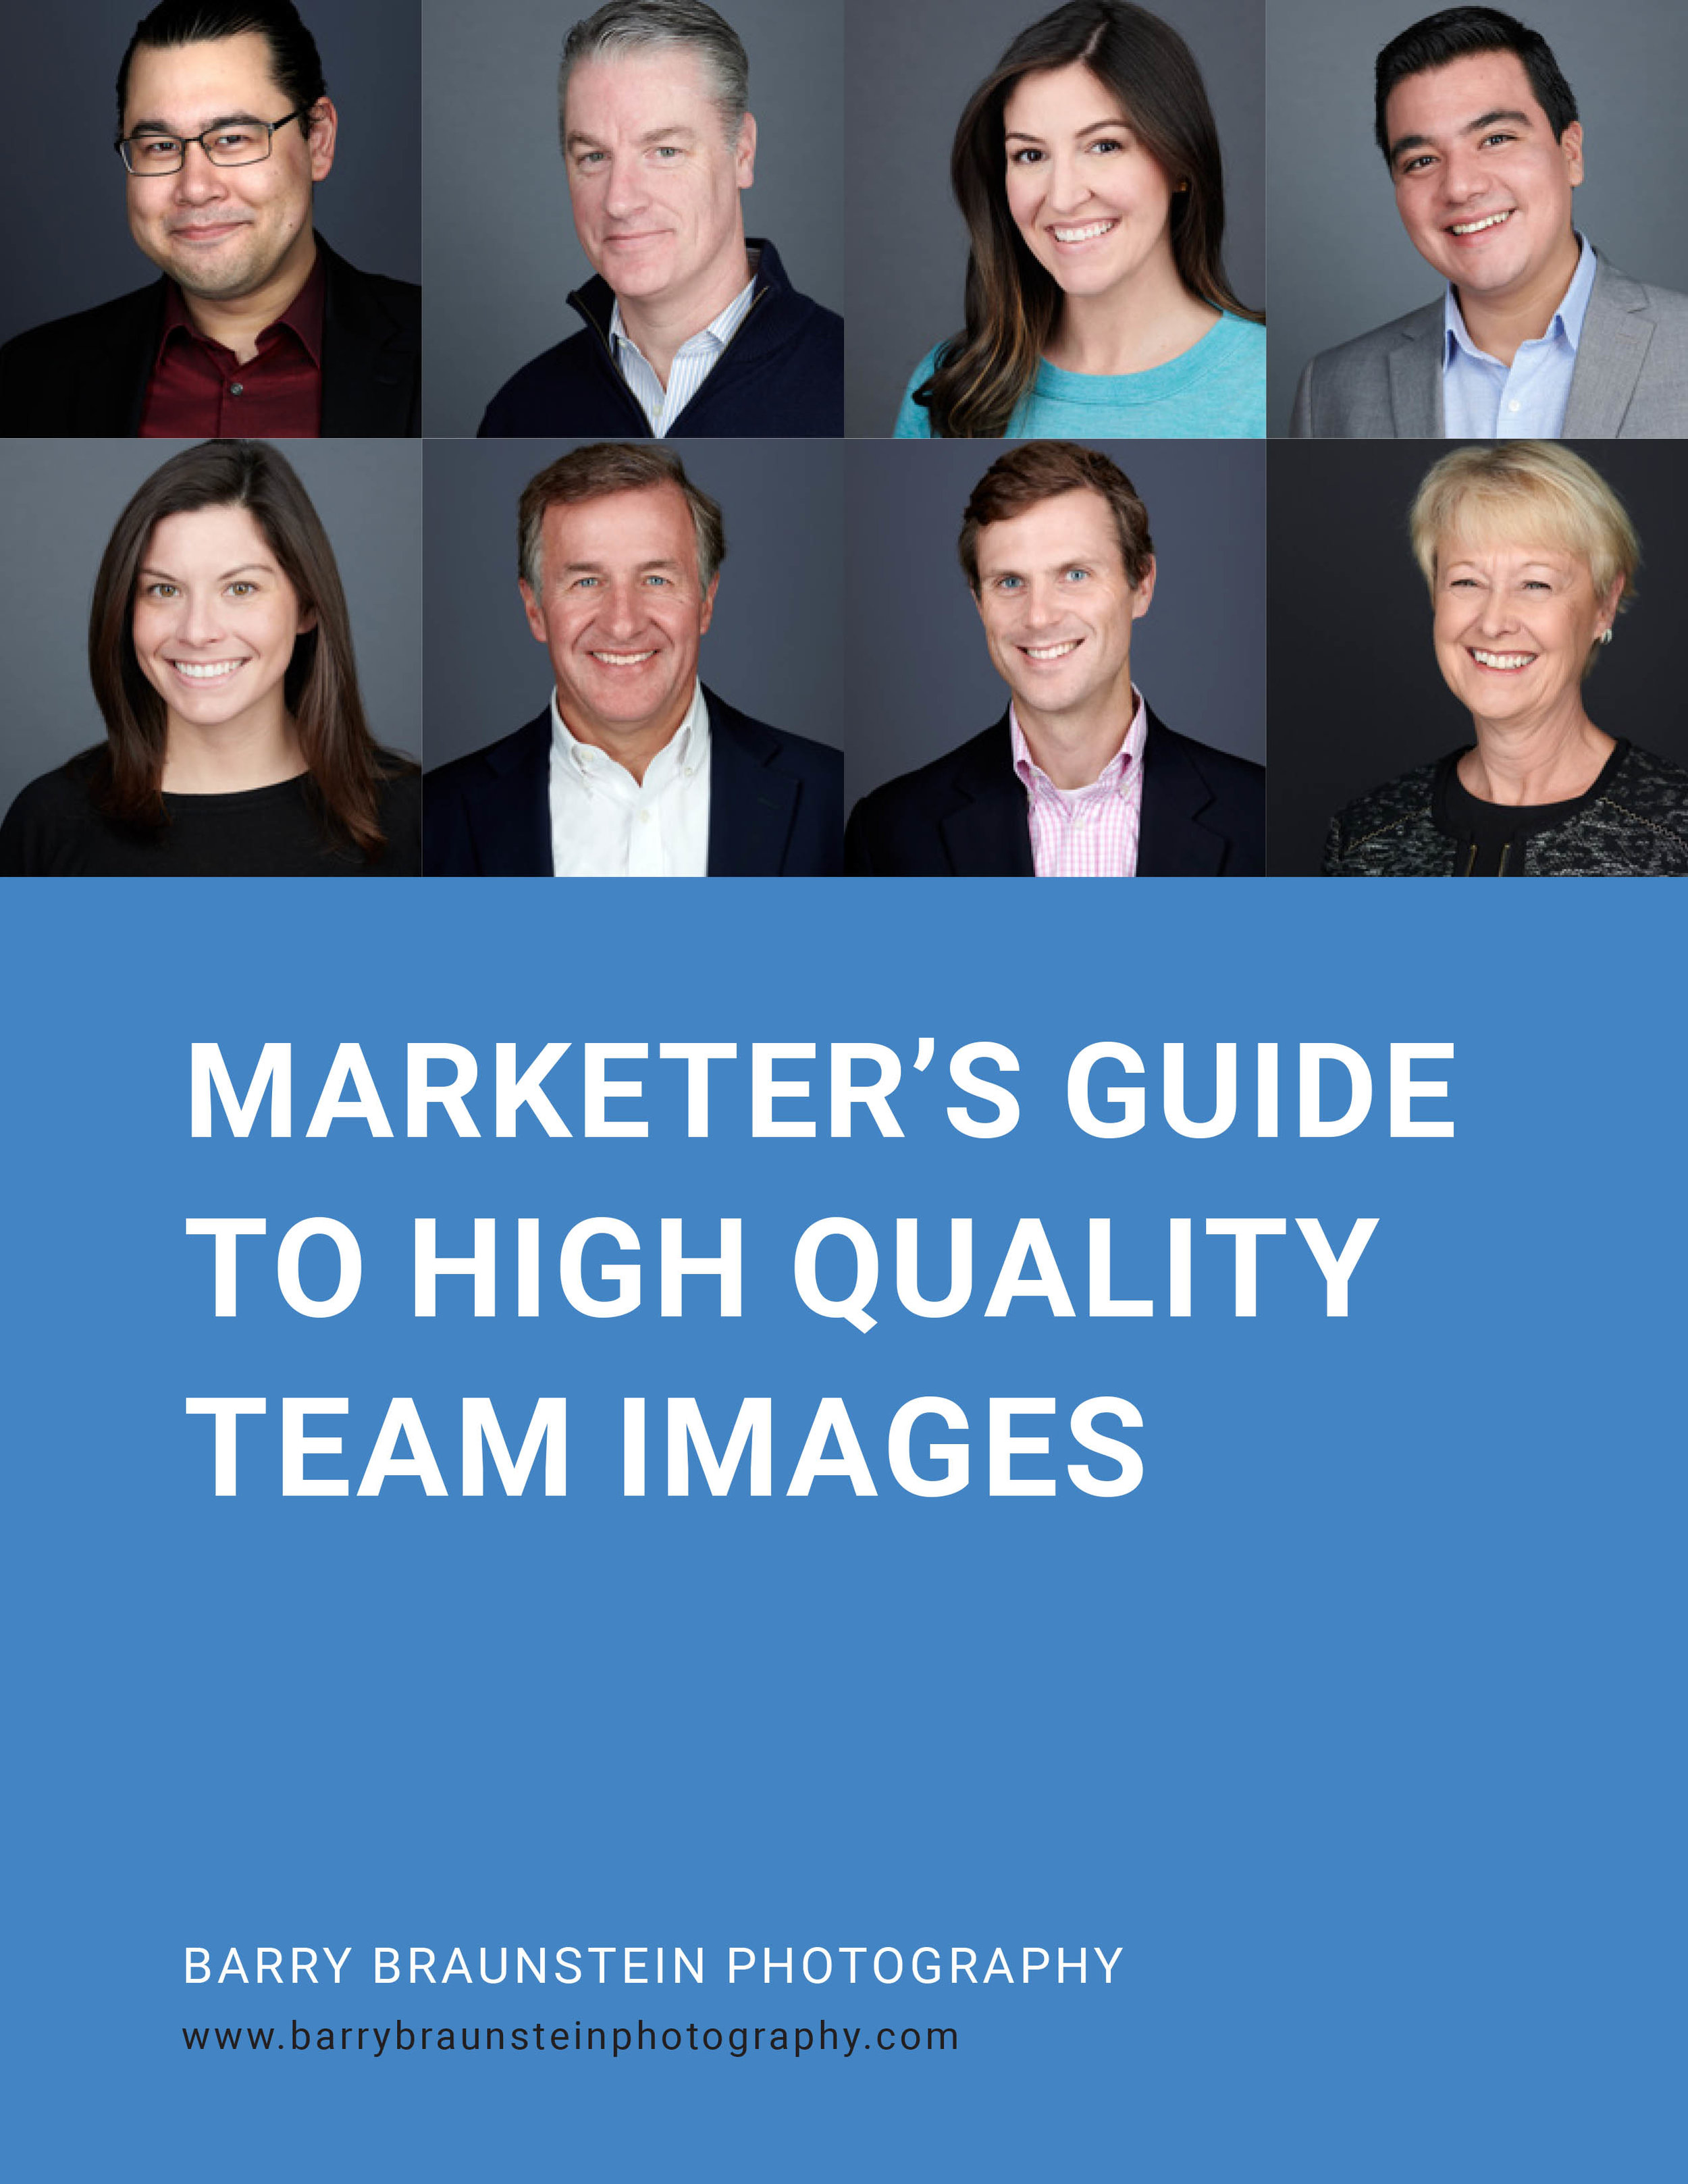 marketers-guide-to-high-quality-team-imagesjpeg.jpg